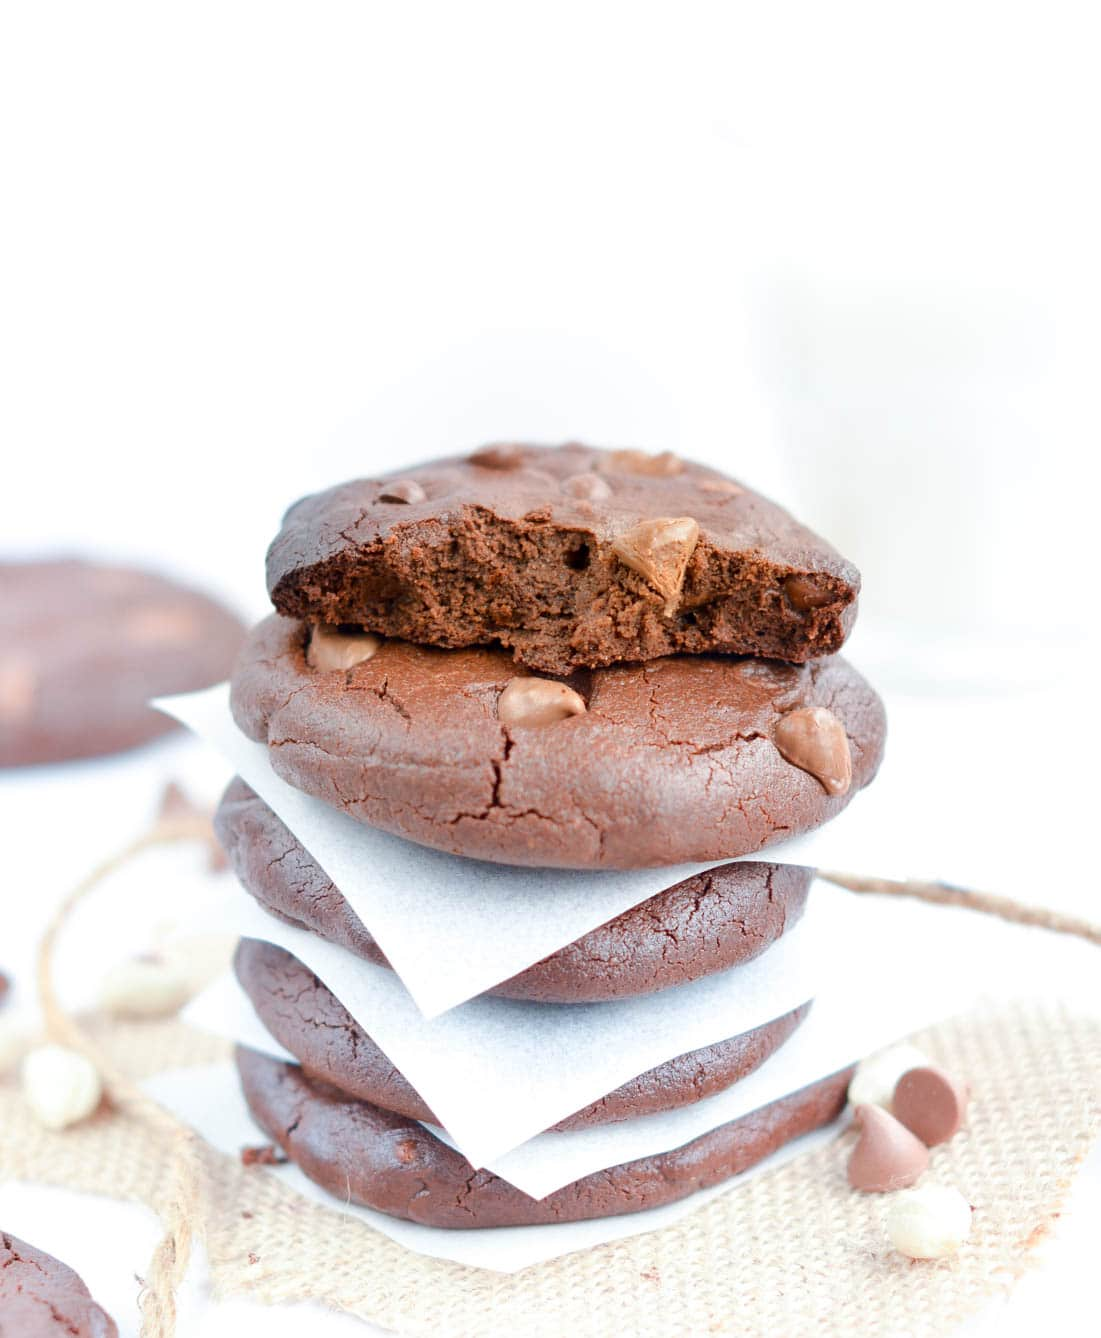 flourless chocolate peanut butter cookies s with chocolate chips. NO refined ingredients, Flourless, No Sugar, easy 6 ingredients recipe to whip in 5 minutes. Grain free, gluten free and dairy free.